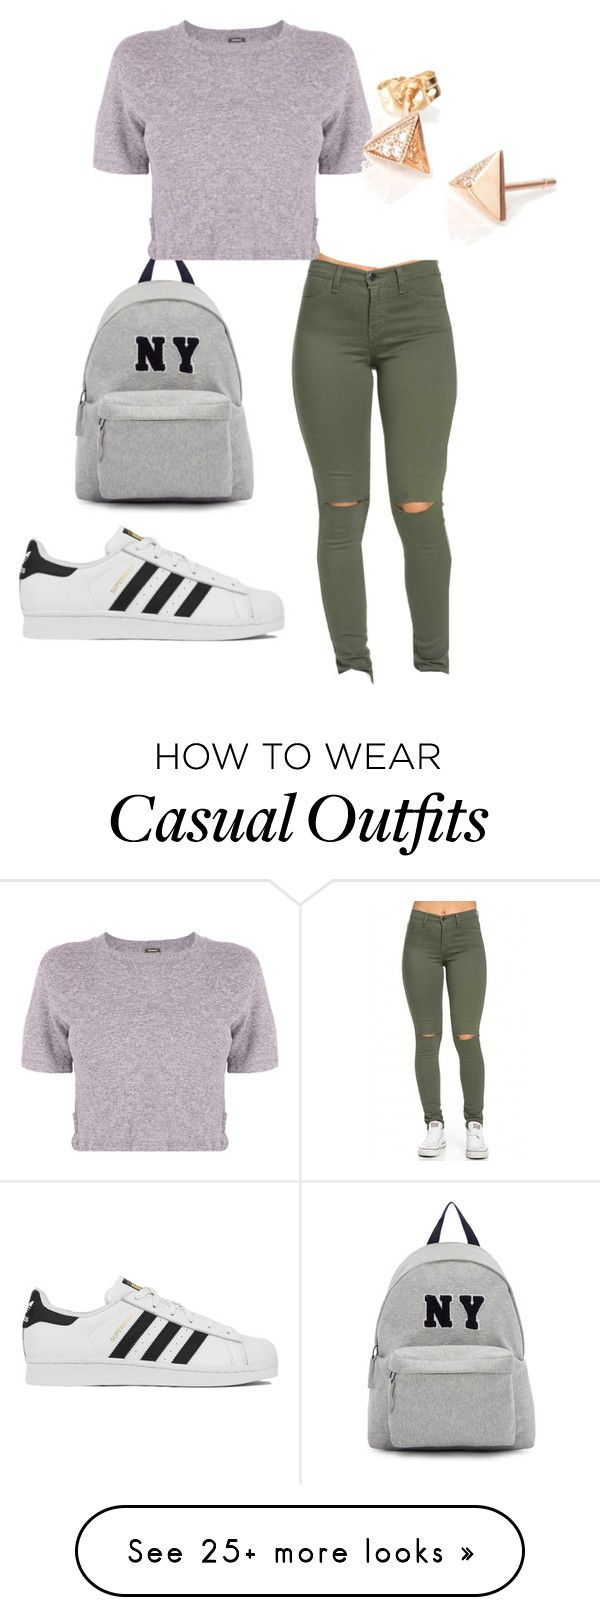 """""""Casual"""" by aishaamin25 on Polyvore featuring Joshua's, Monrow, adidas, women's clothing, women's fashion, women, female, woman, misses and juniors"""